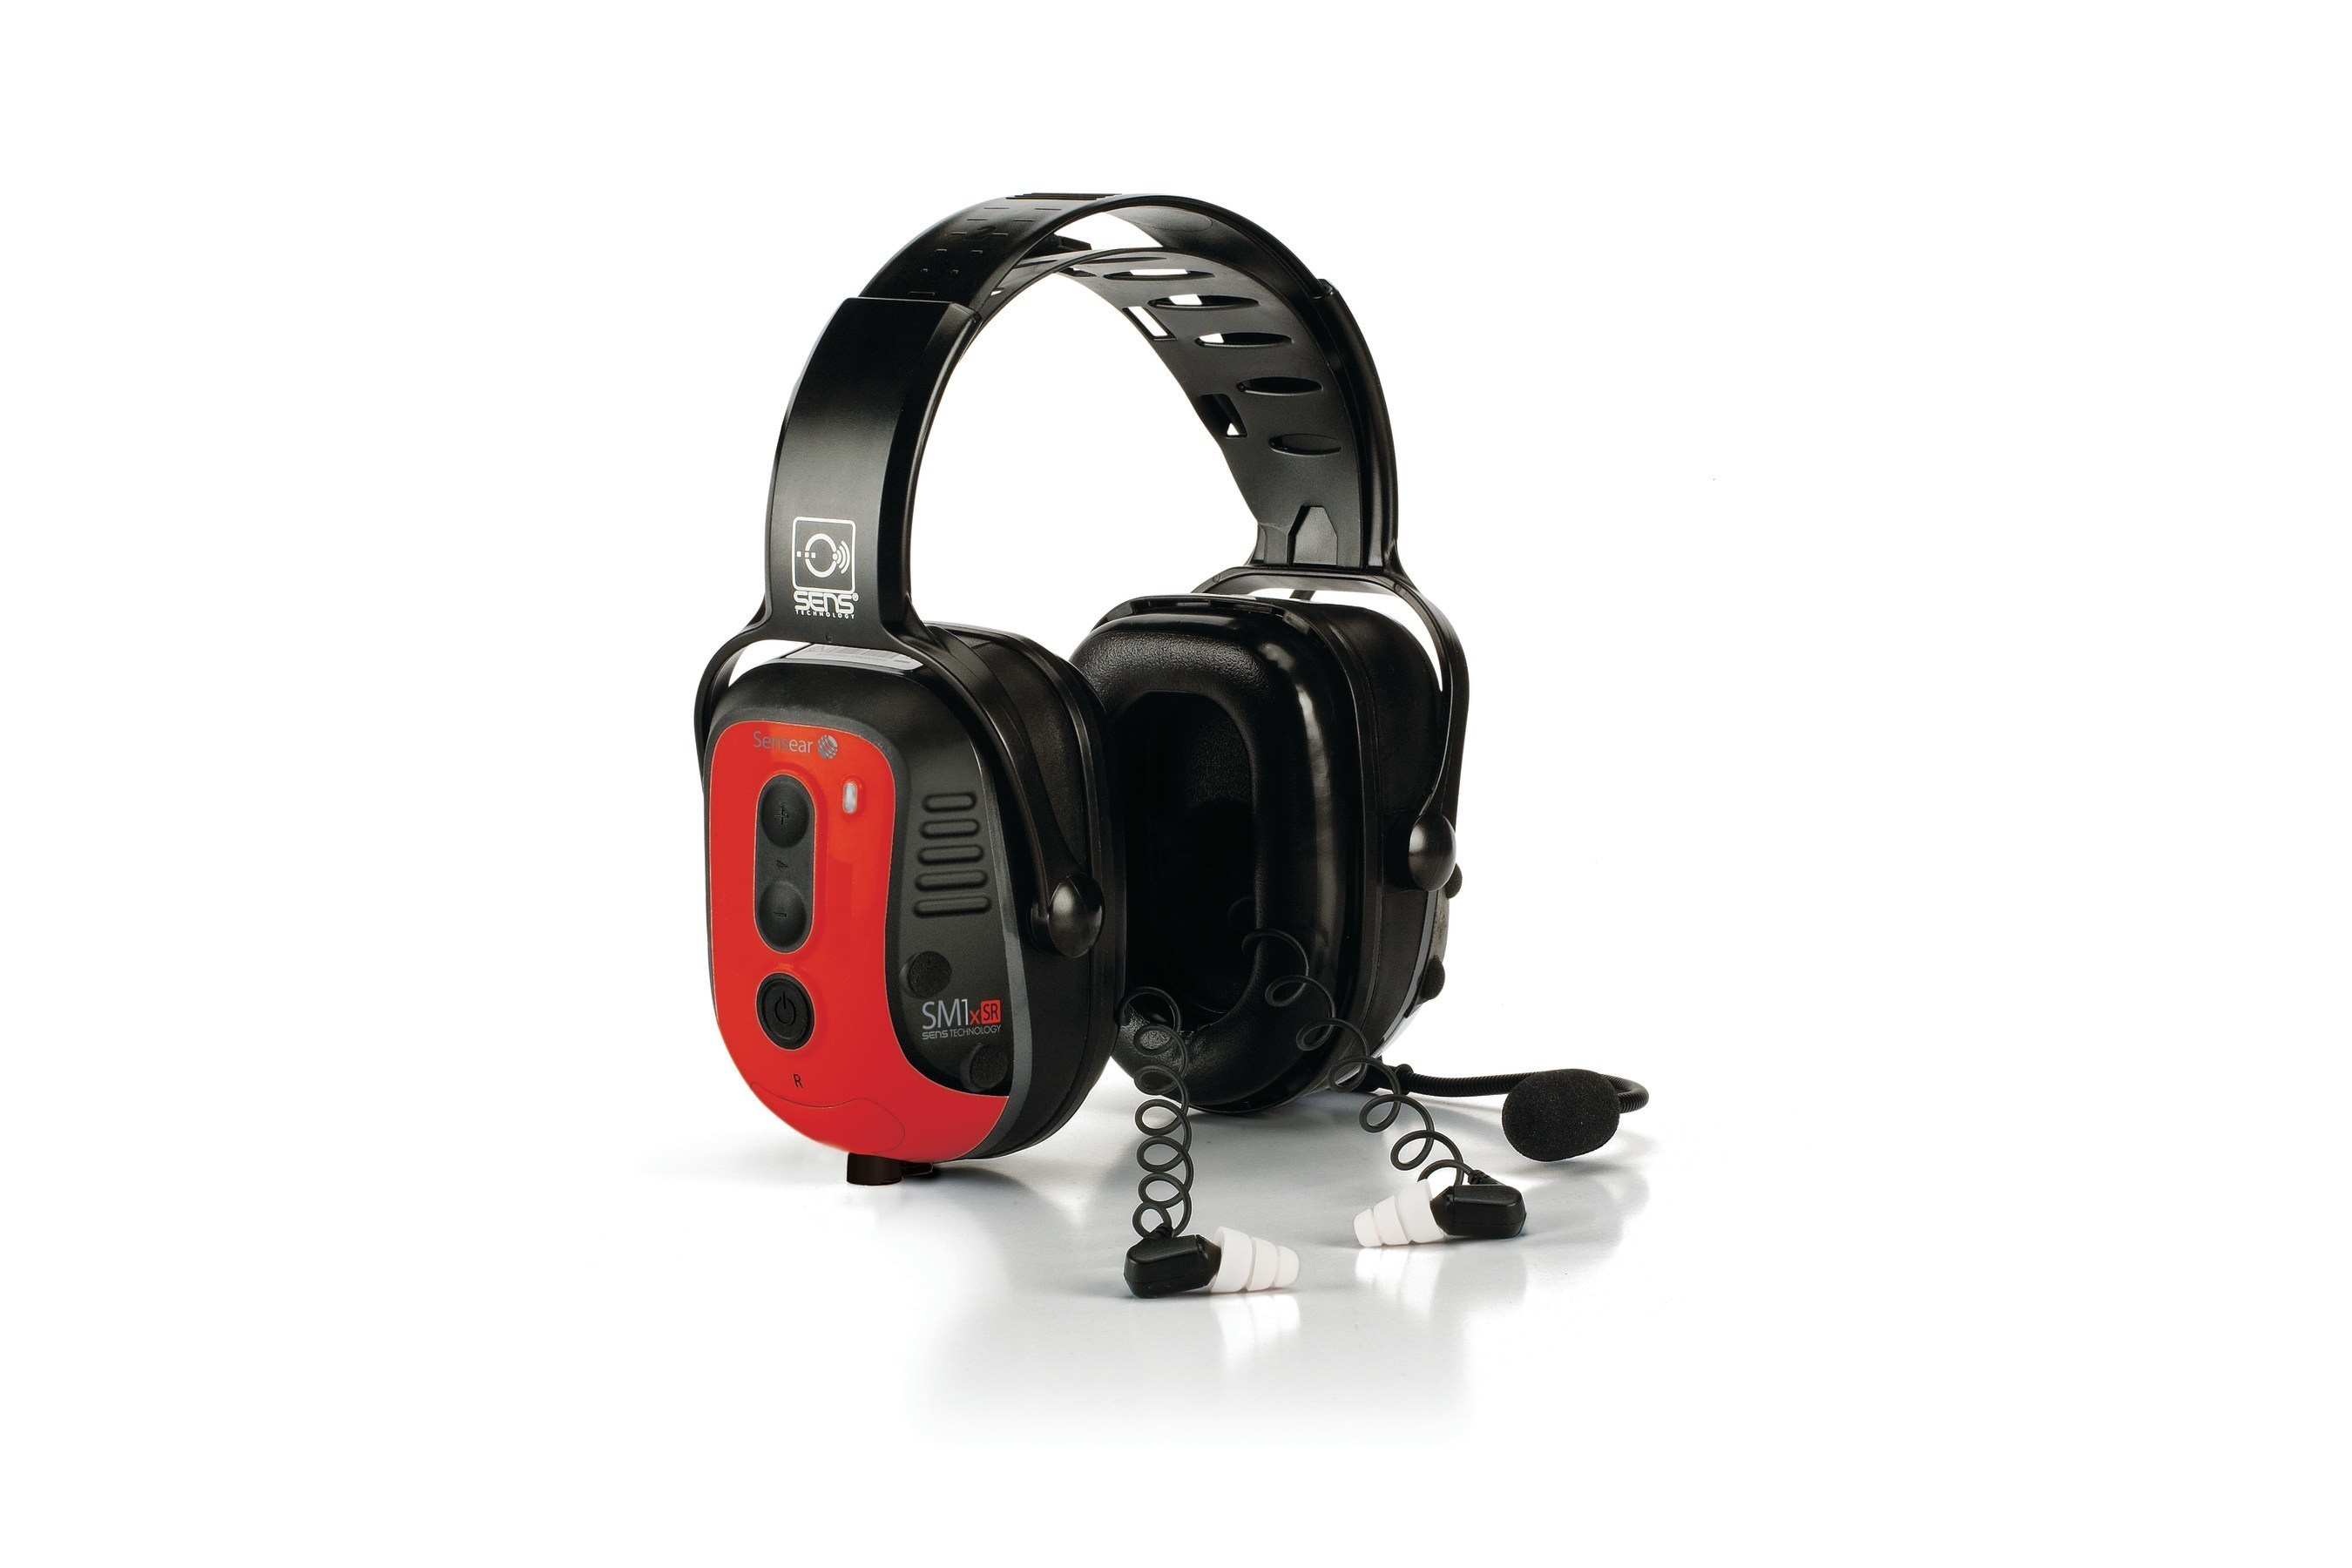 Introducing the Sensear Intrinsically Safe Double Protection Headset